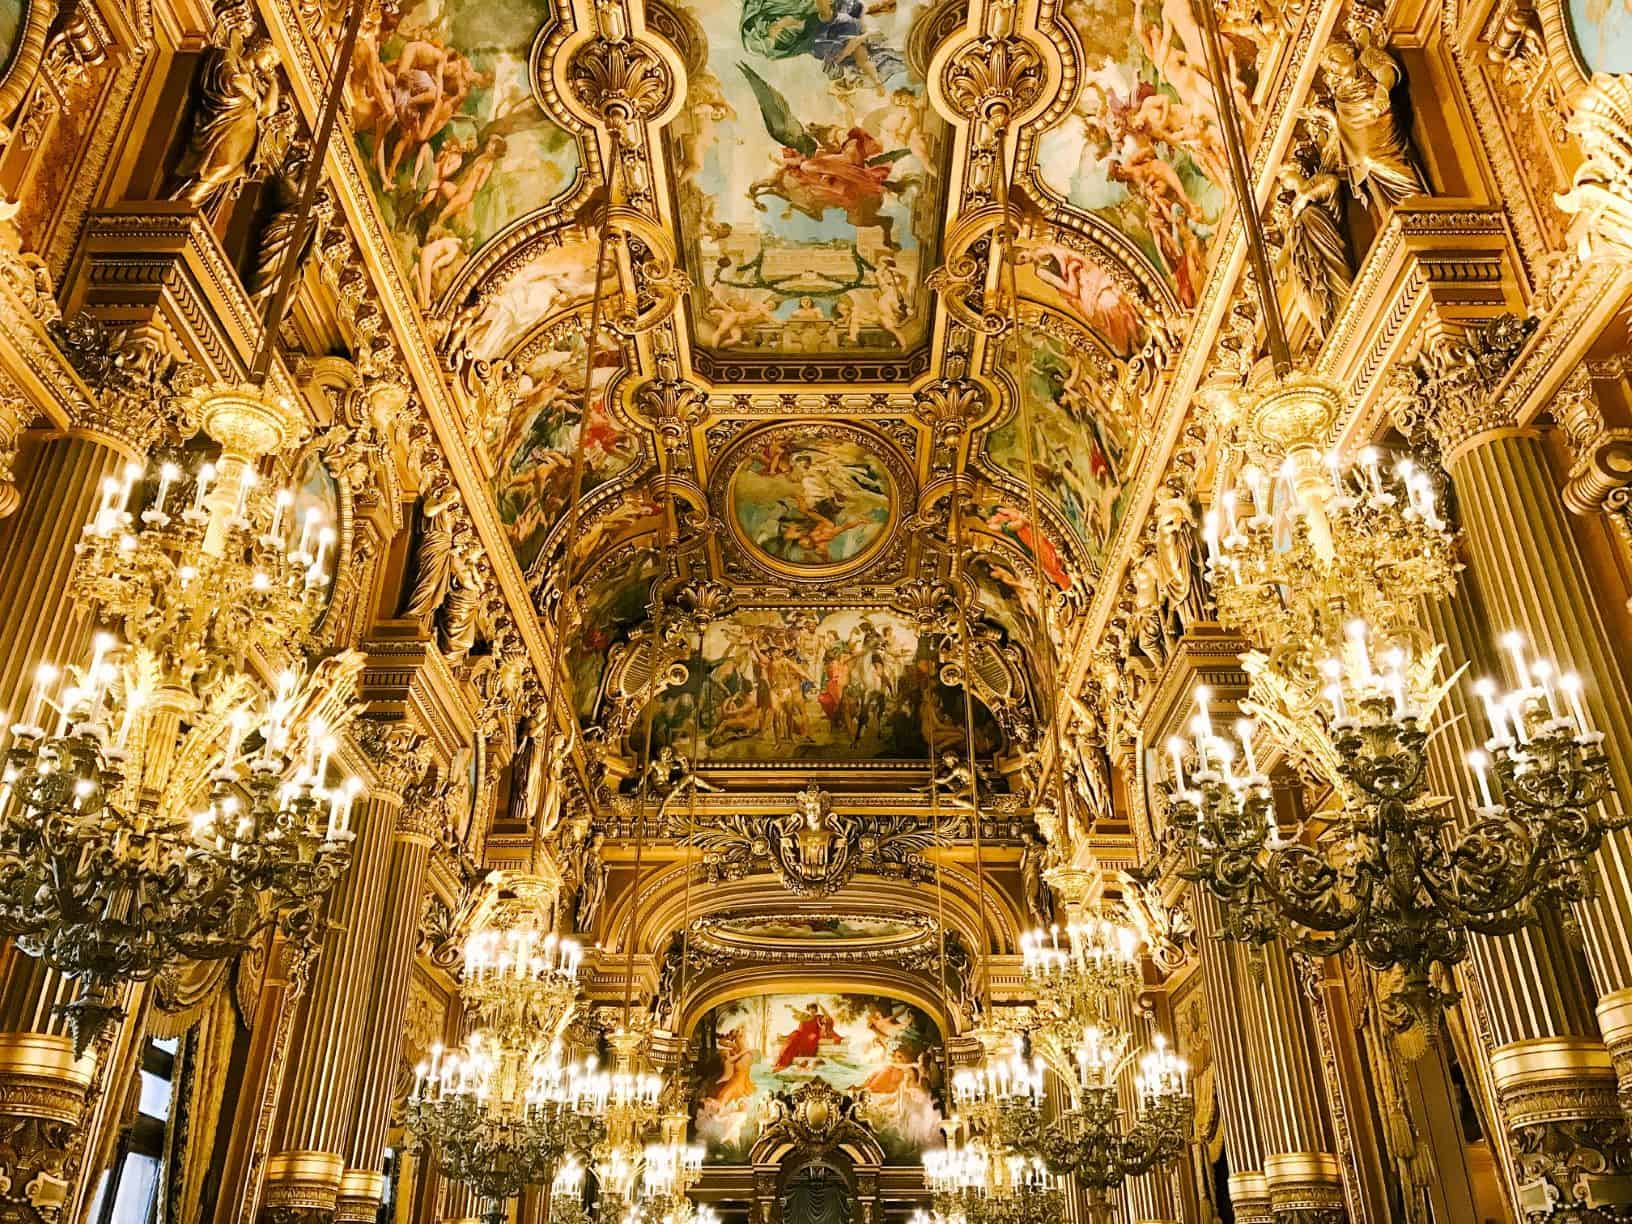 Visitng the Opera House is on top paris things to do and one of the best attractions at paris